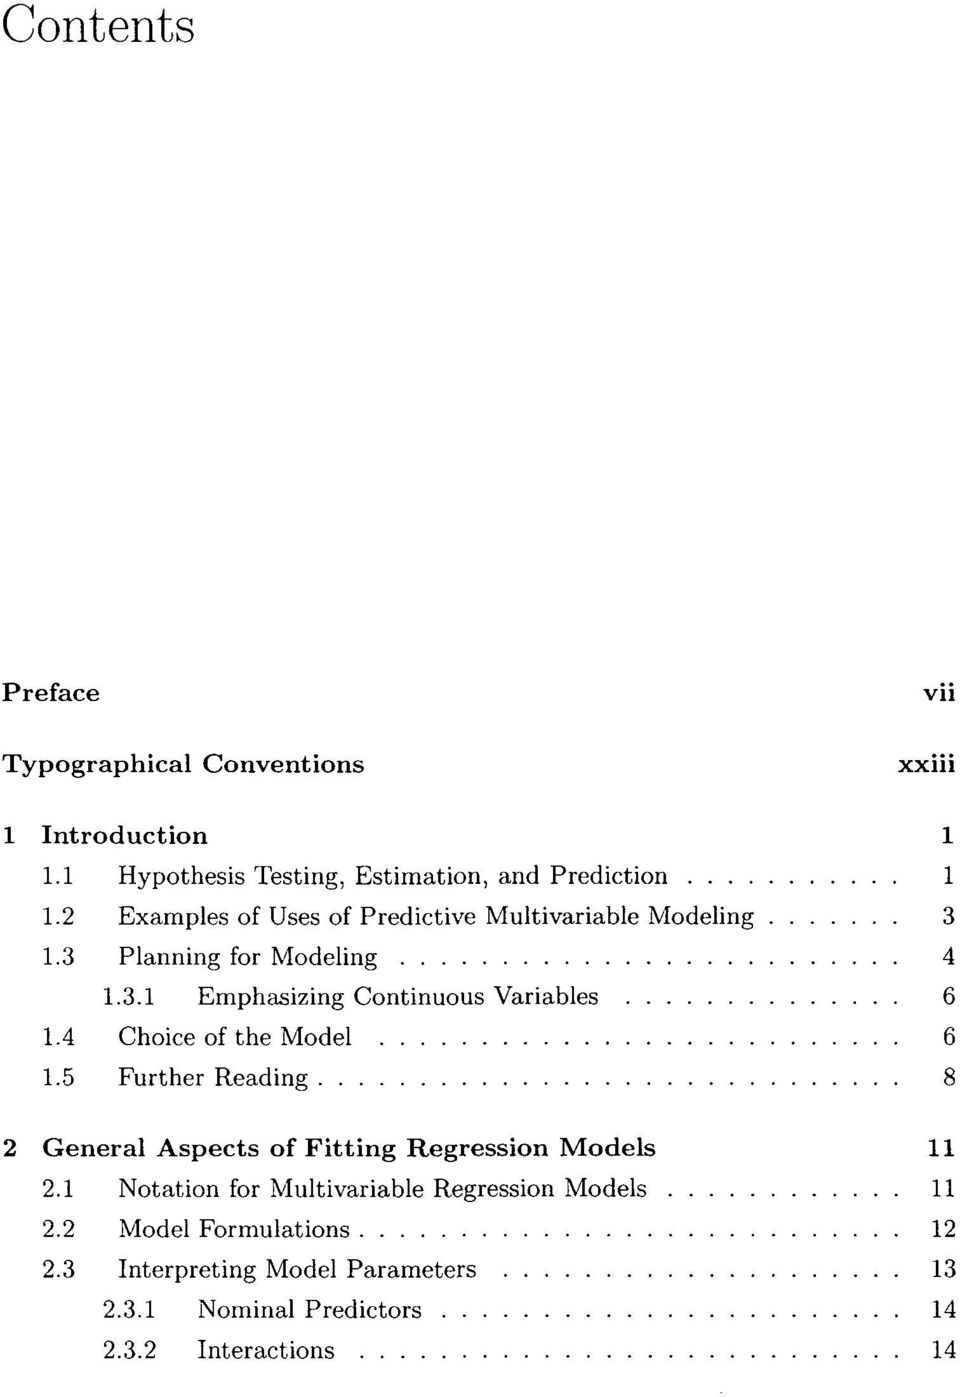 4 Choice of the Model 6 1.5 Further Reading 8 2 General Aspects of Fitting Regression Models 11 2.